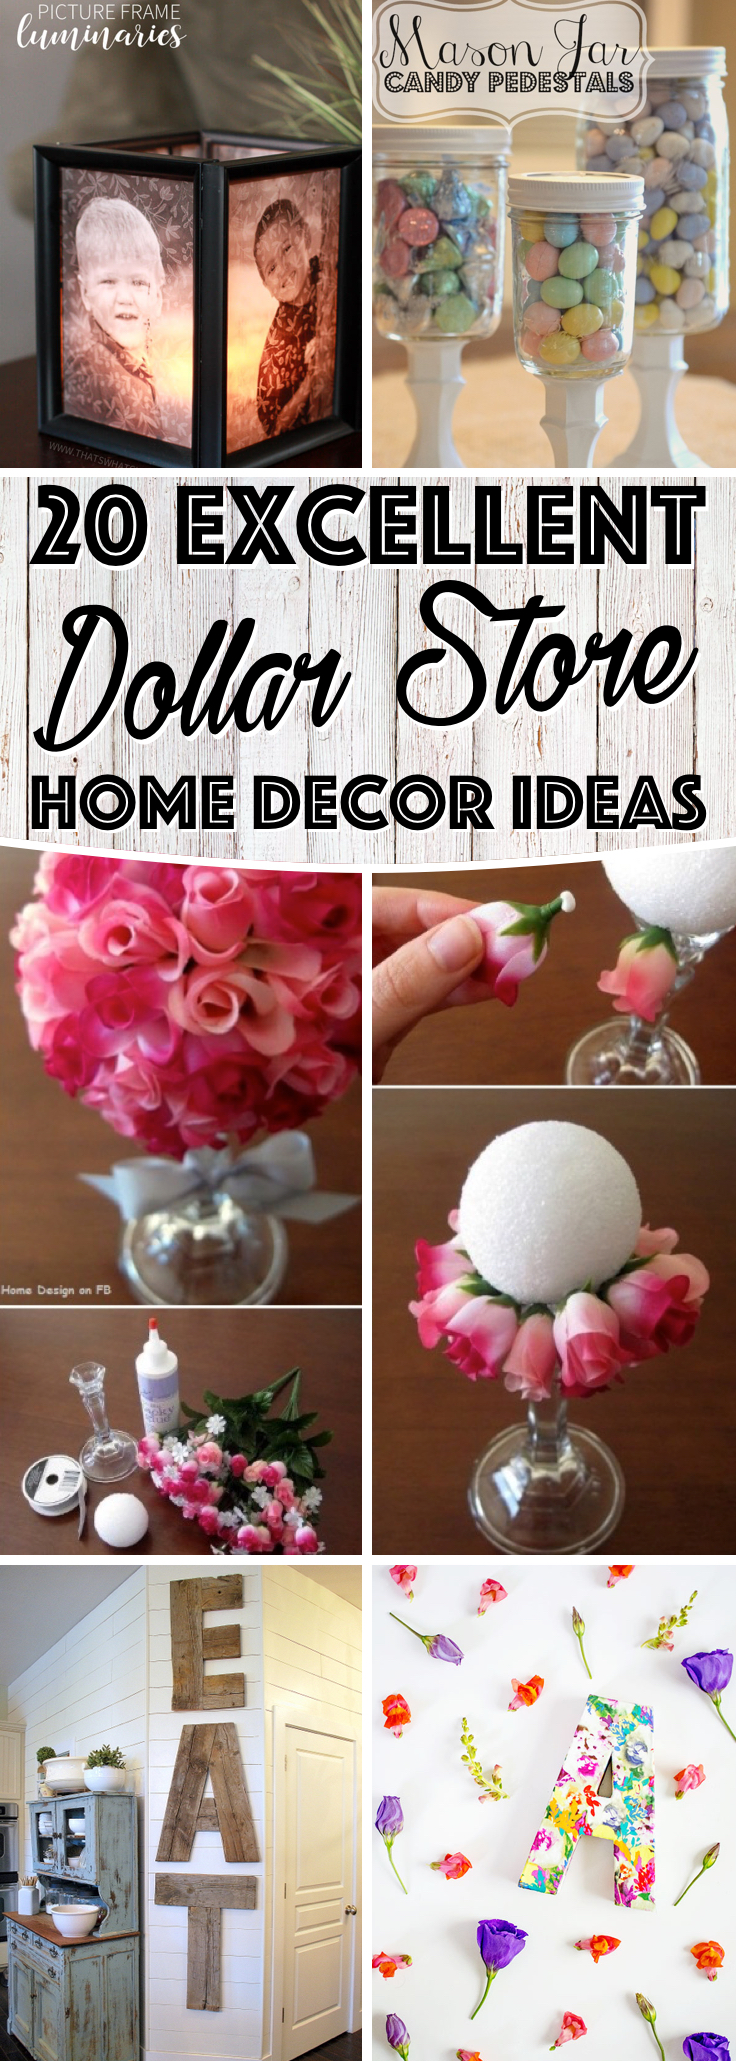 20 excellent dollar store home decor ideas Decorating items shop near me